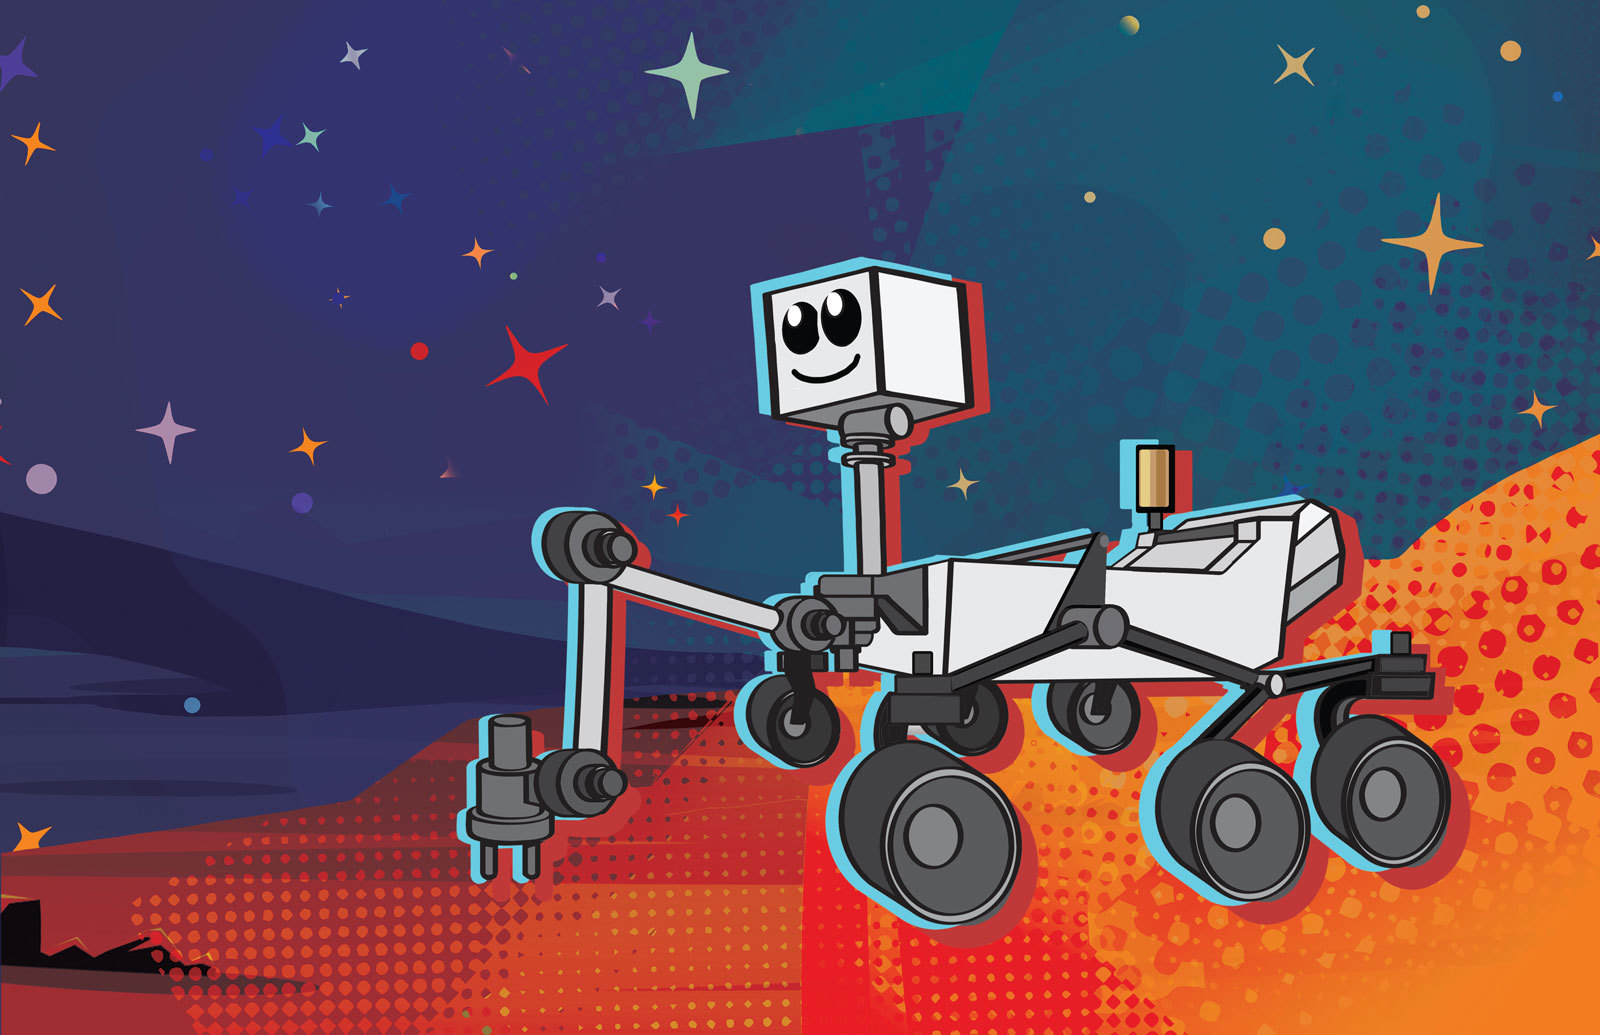 This cartoon depicts NASA's next Mars rover, which launches in 2020.